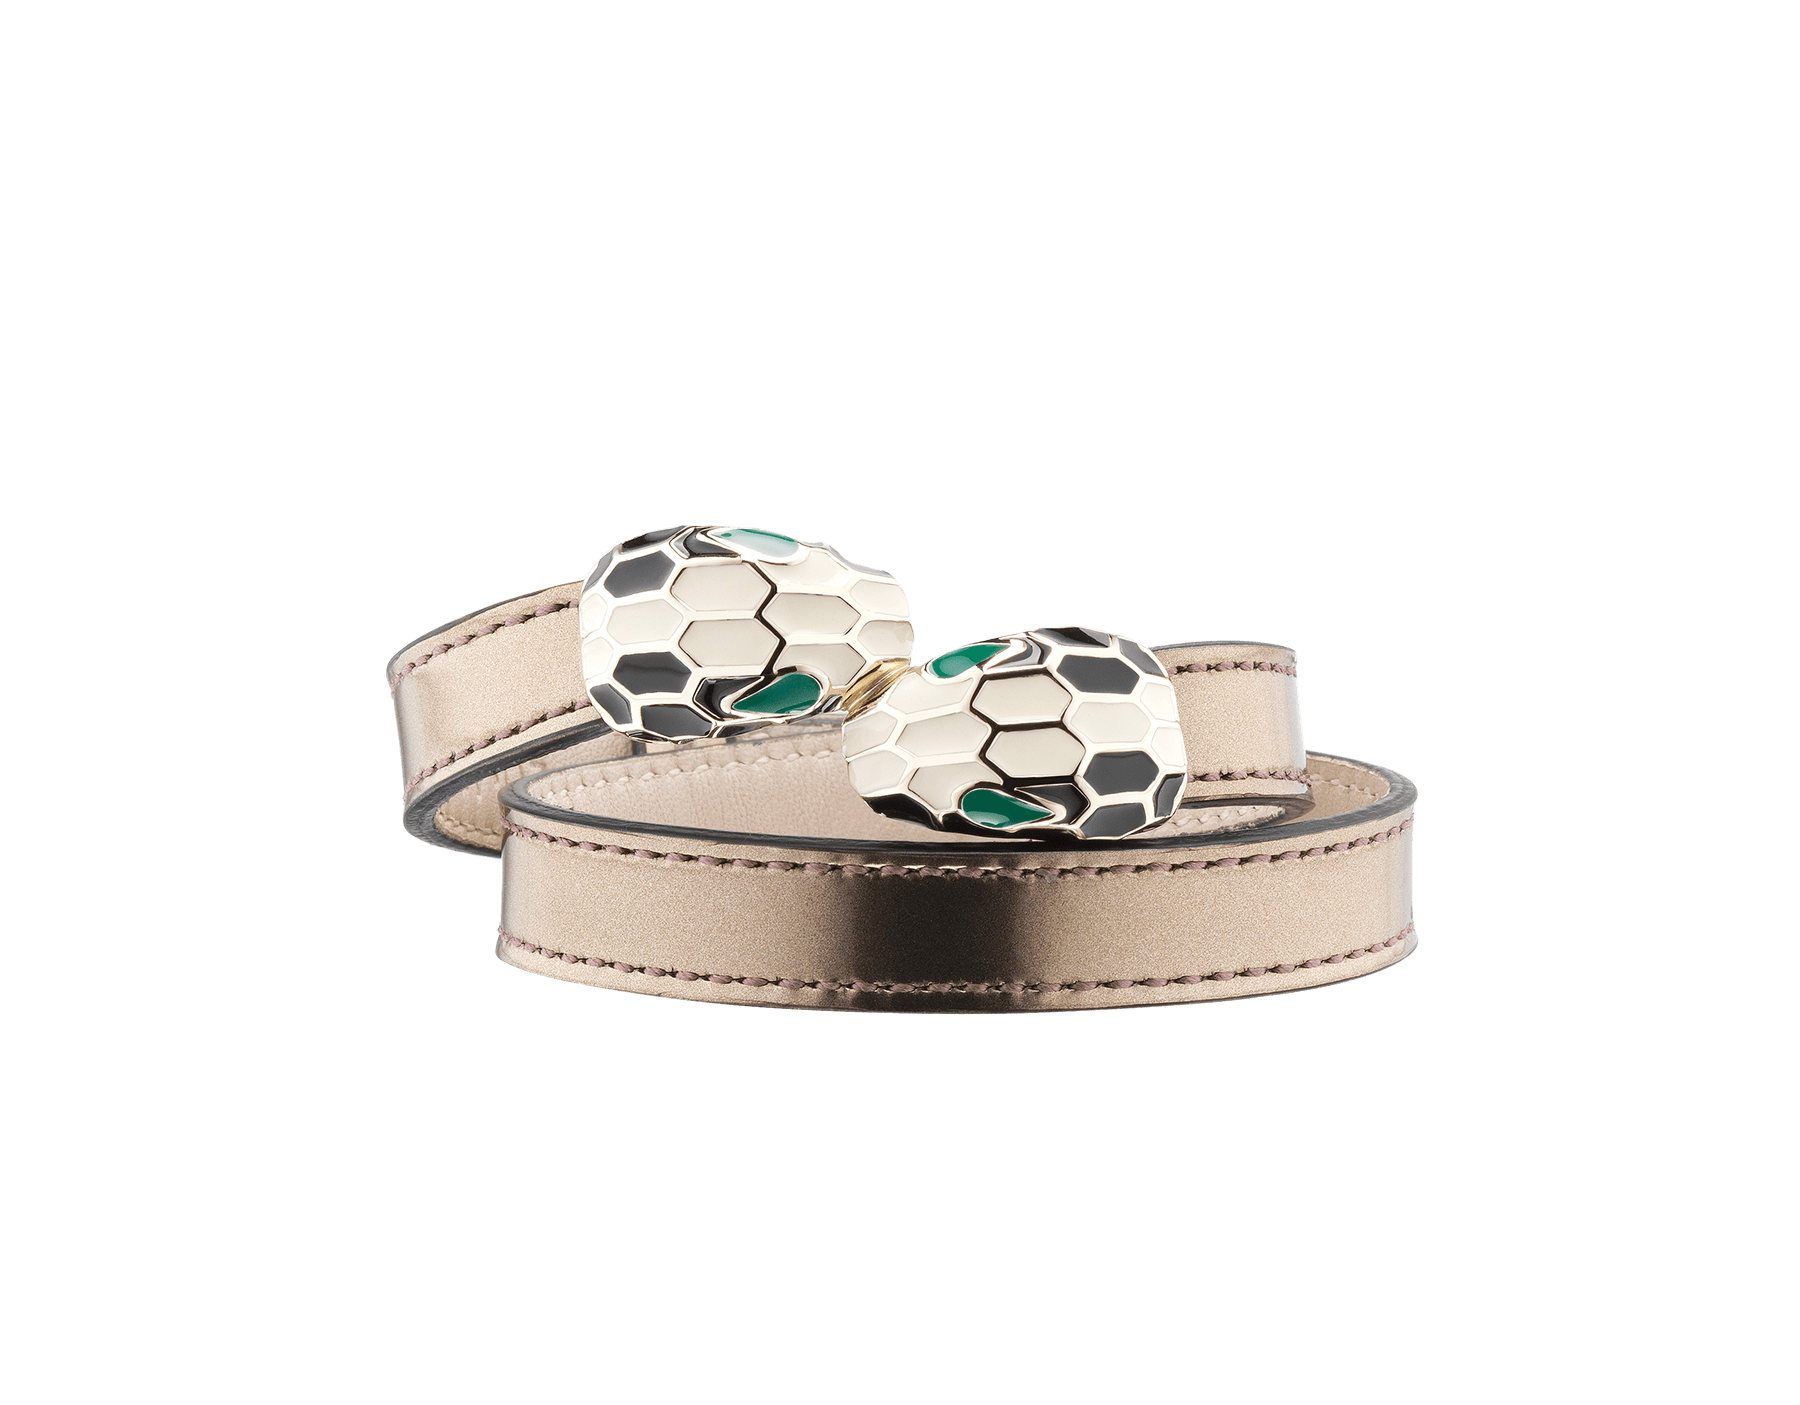 Multi-coiled bracelet in antique bronze brushed metallic calf leather. Brass light gold plated iconic contraire Serpenti head closure in black and white enamel with malachite enamel eyes. 39919 image 1